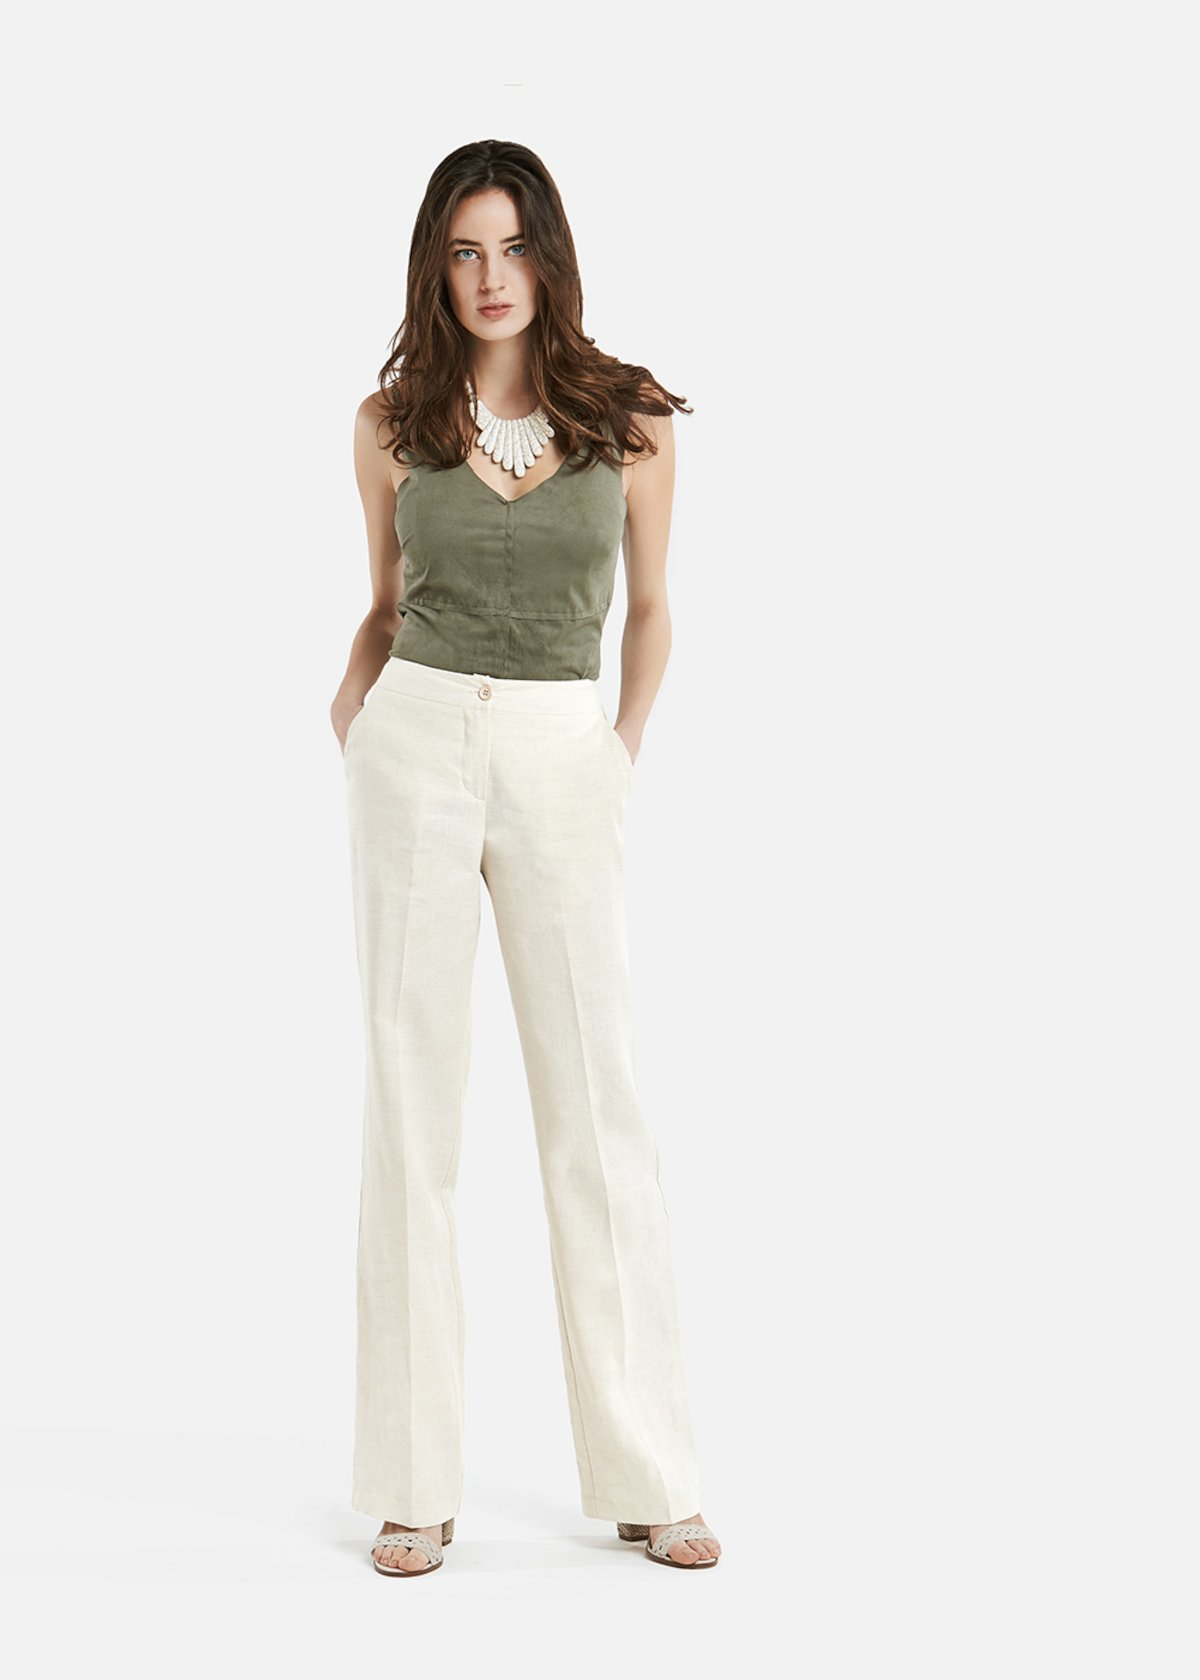 Pantaloni Paco in lino a gamba larga - Light Beige